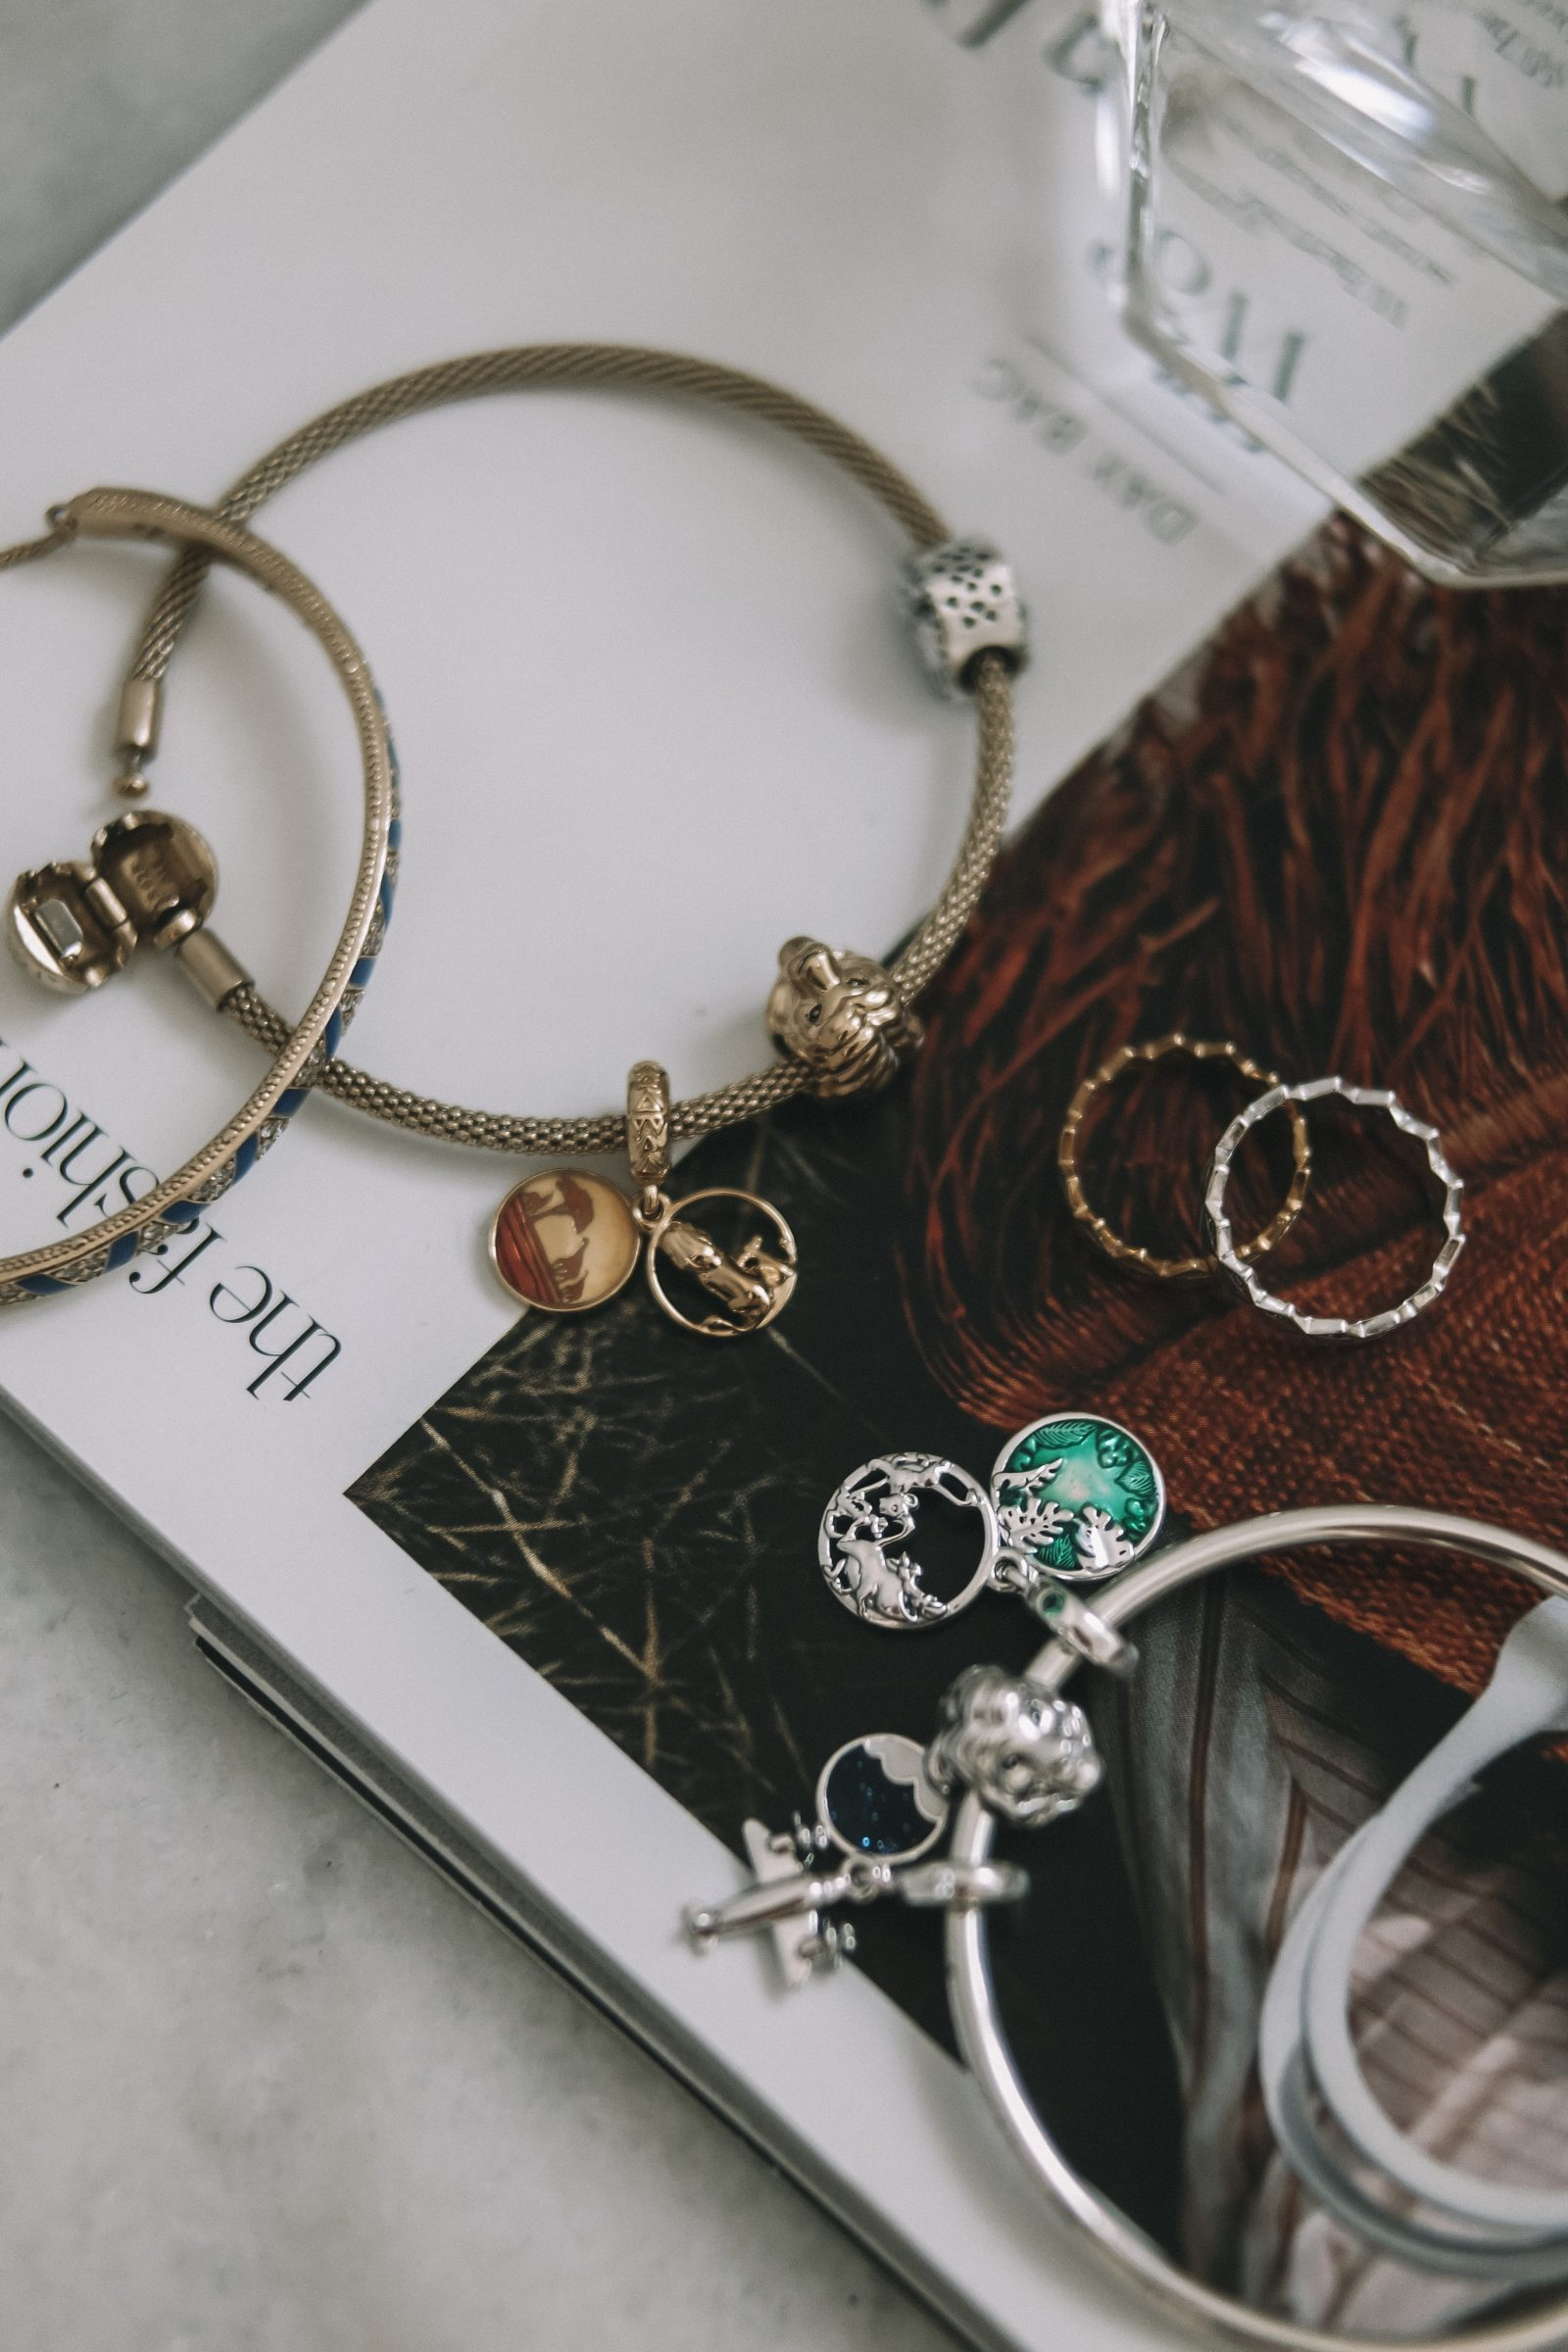 Pandora X Disney Lion King Collection - Gold Bracelet